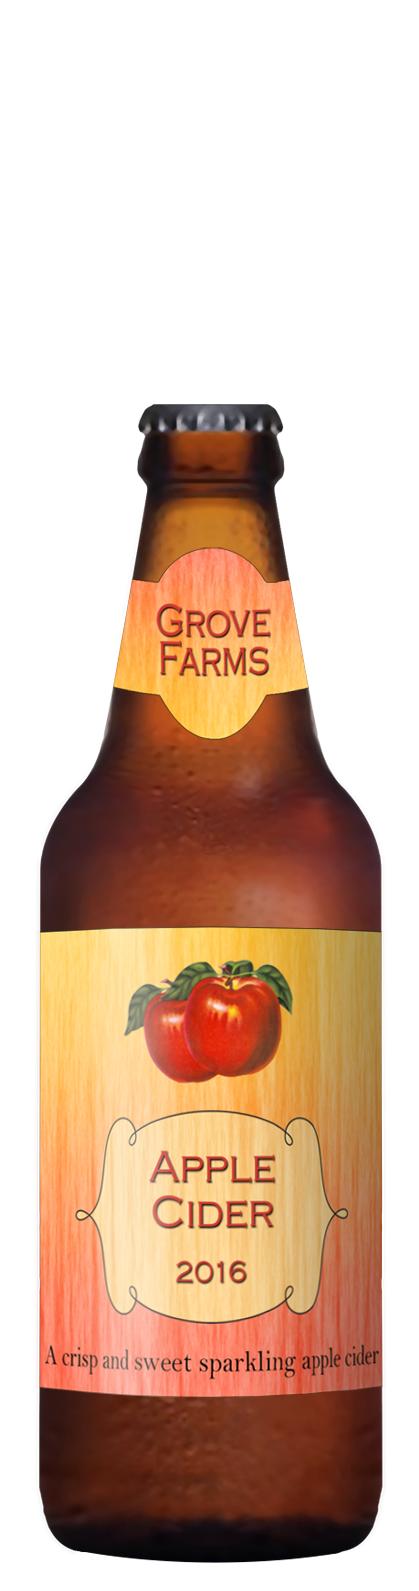 custom cider label with red apples